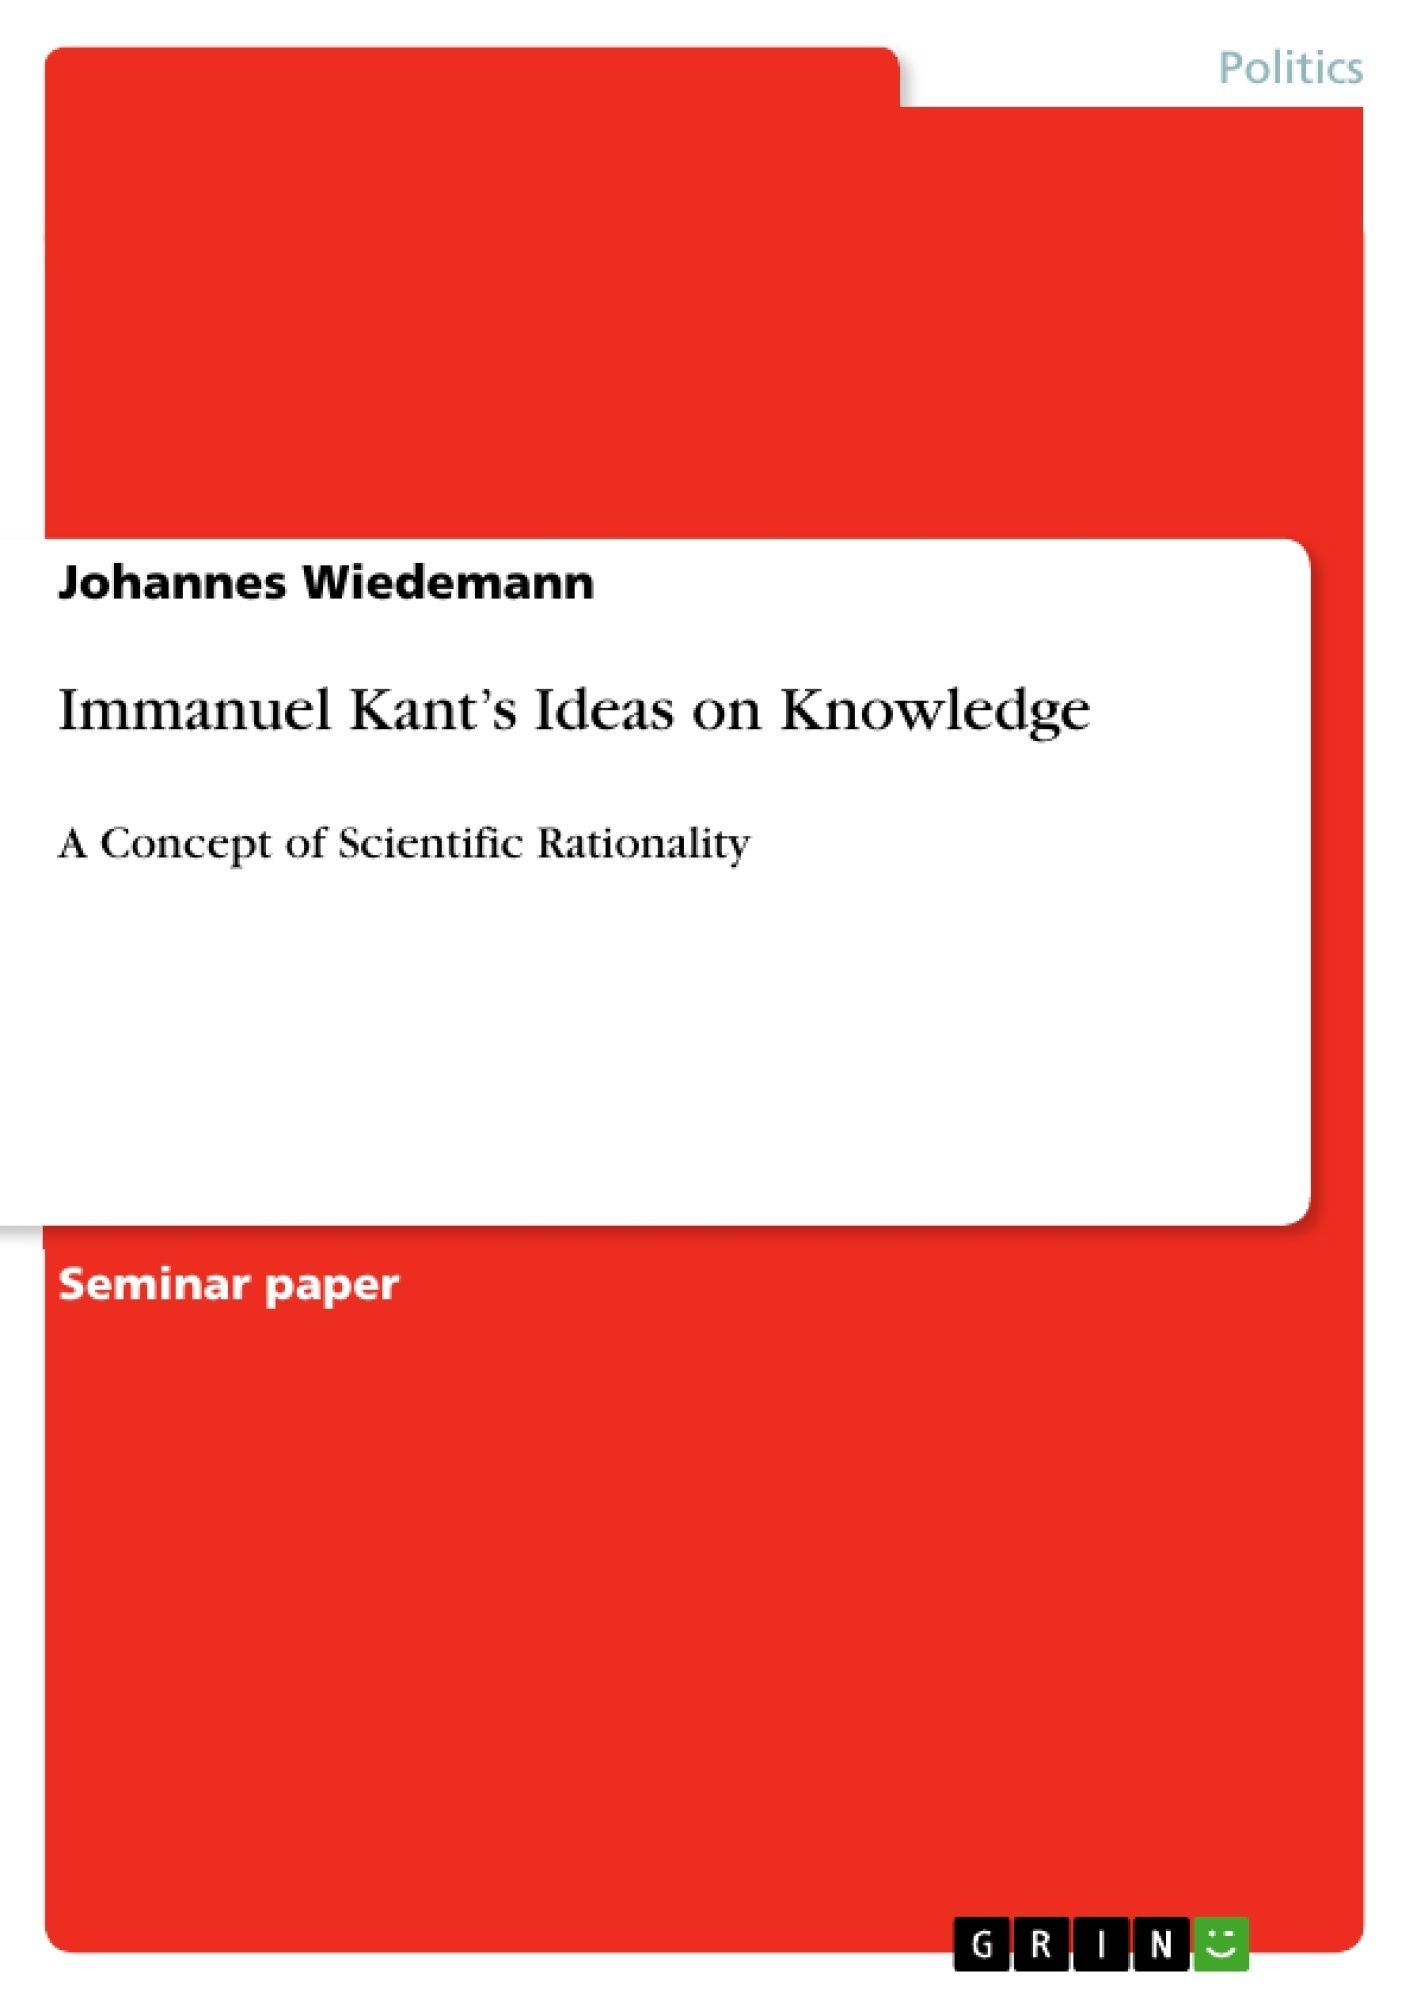 Title: Immanuel Kant's Ideas on Knowledge